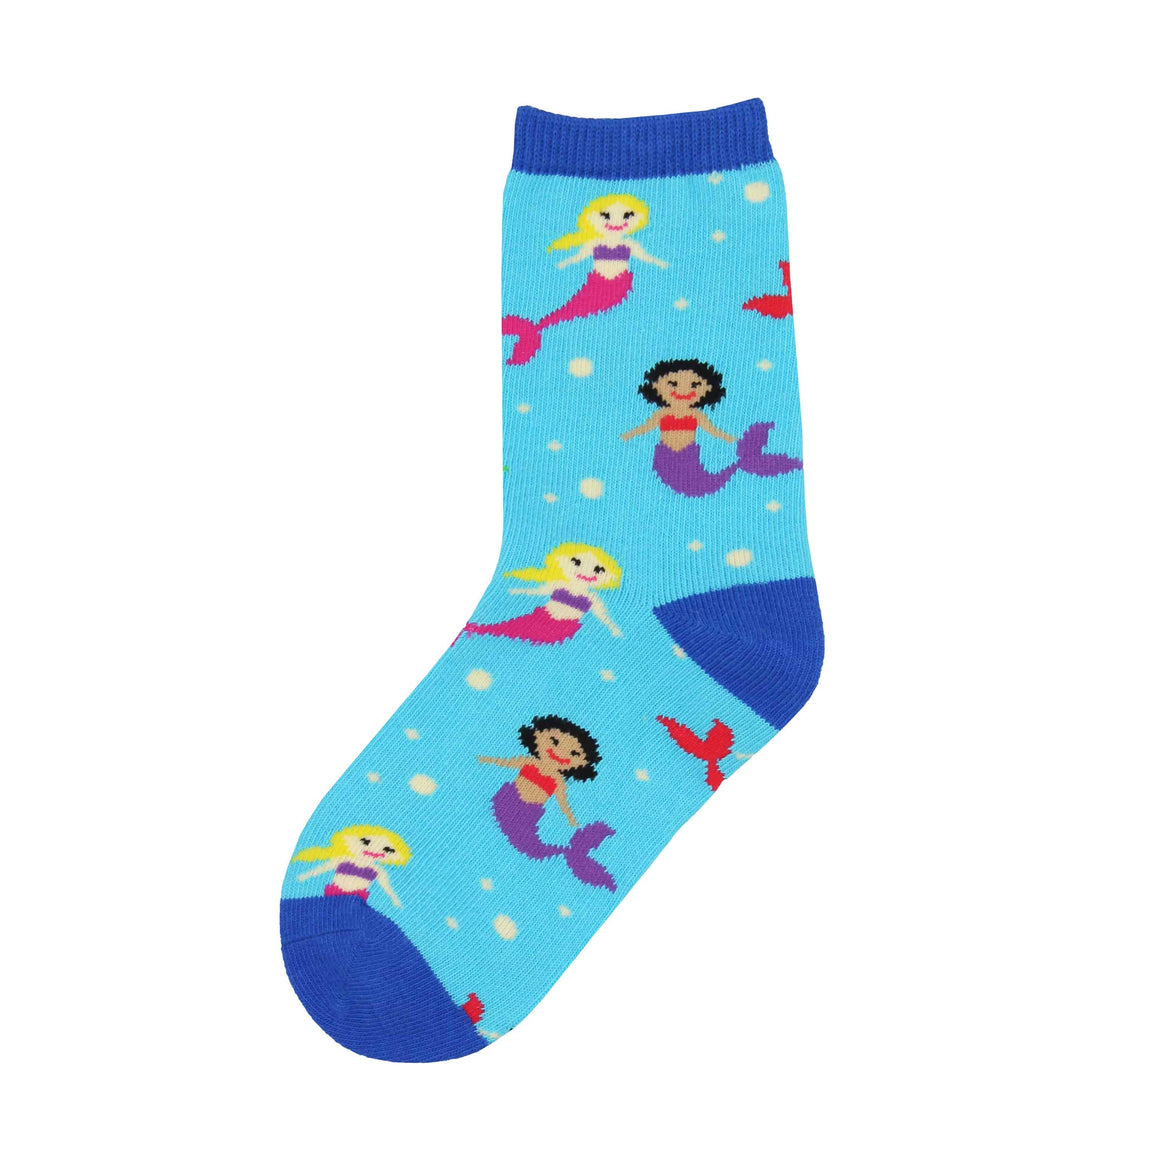 These kids' socks are covered in ethnically diverse mermaids living in harmony under the sea.